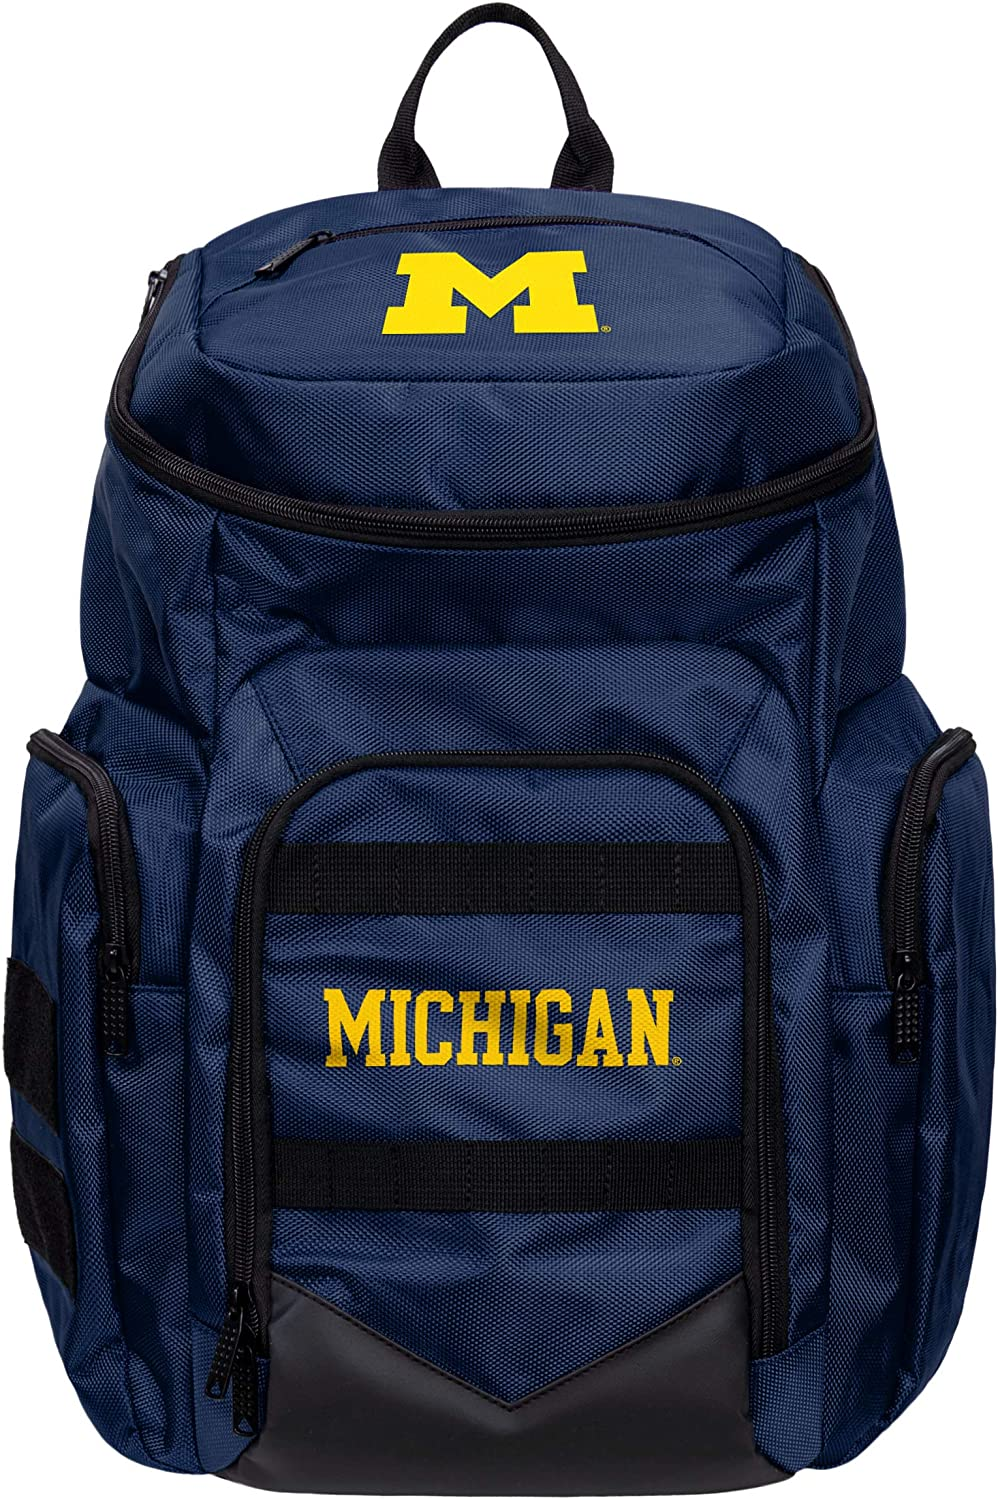 Michigan Wolverines Bombing free shipping Credence NCAA Carrier Backpack